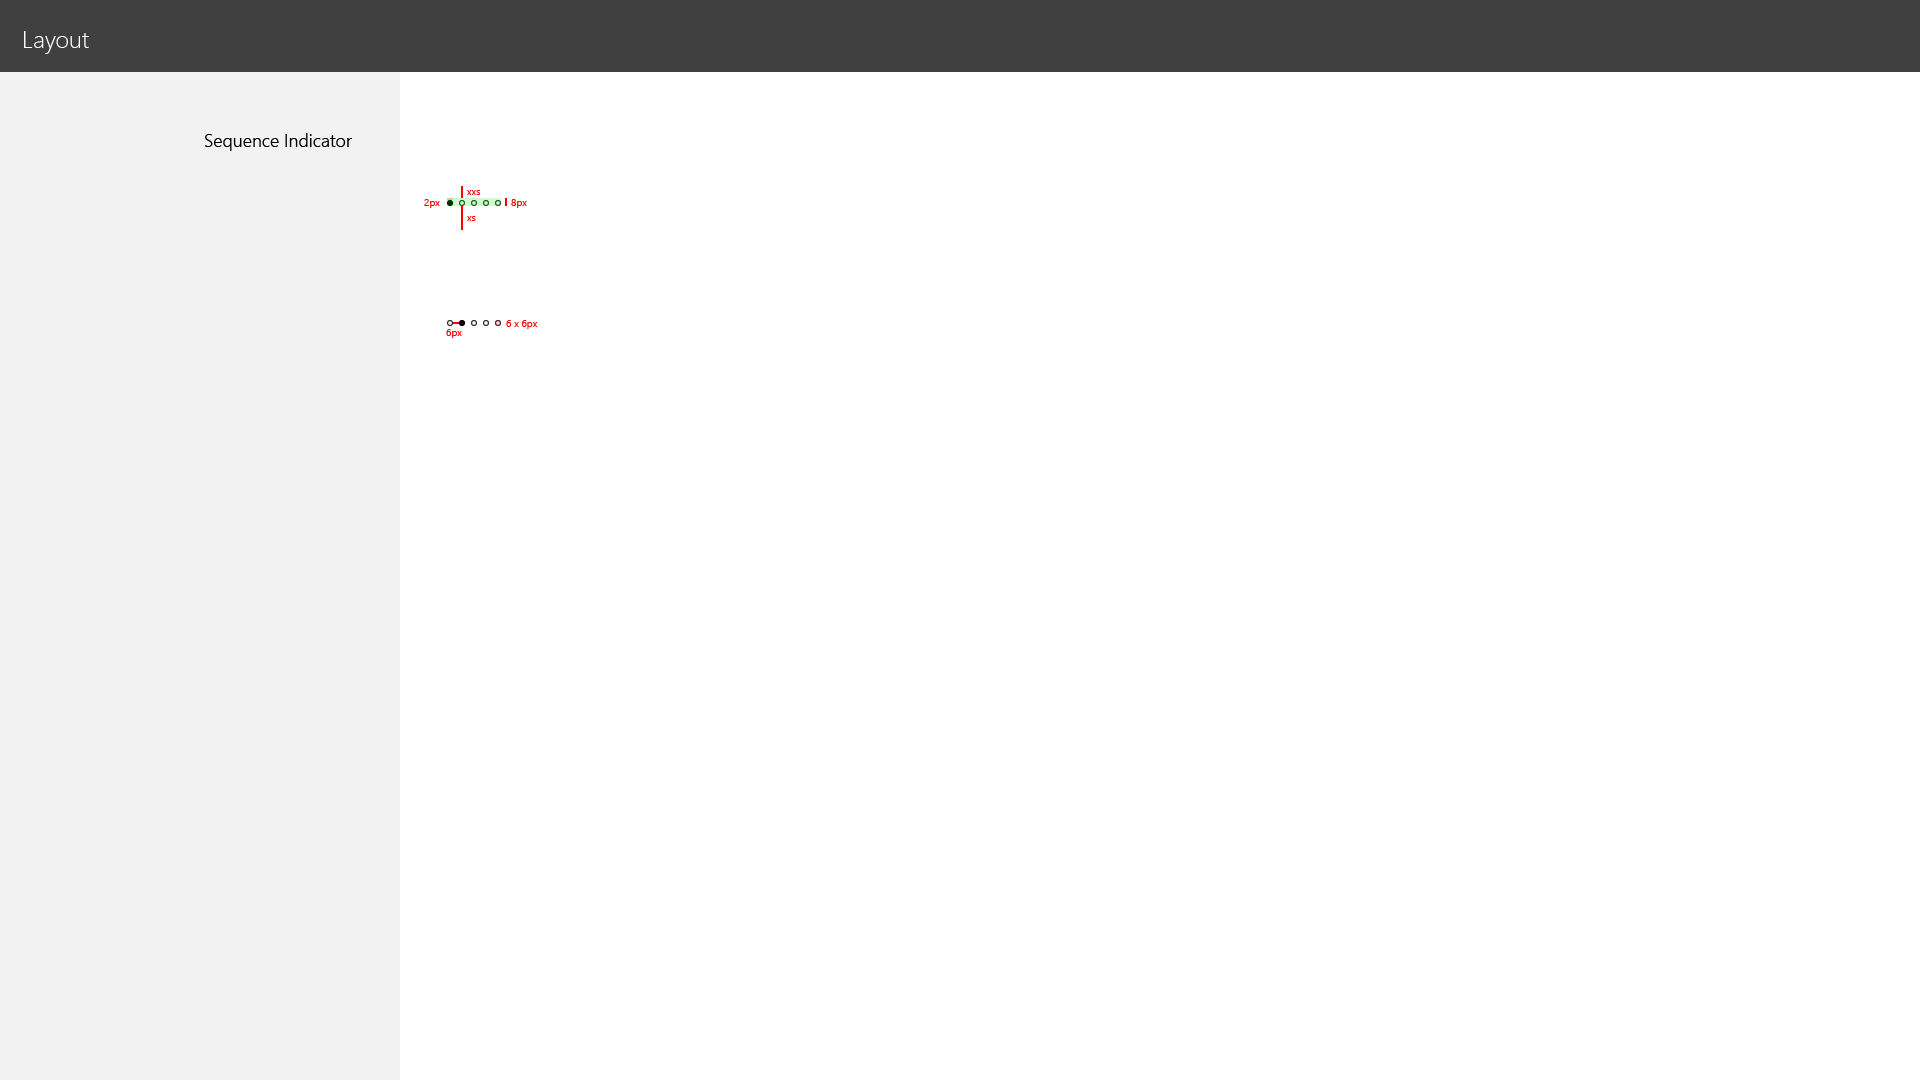 Commanding_Sequence_indicator_Layout.png